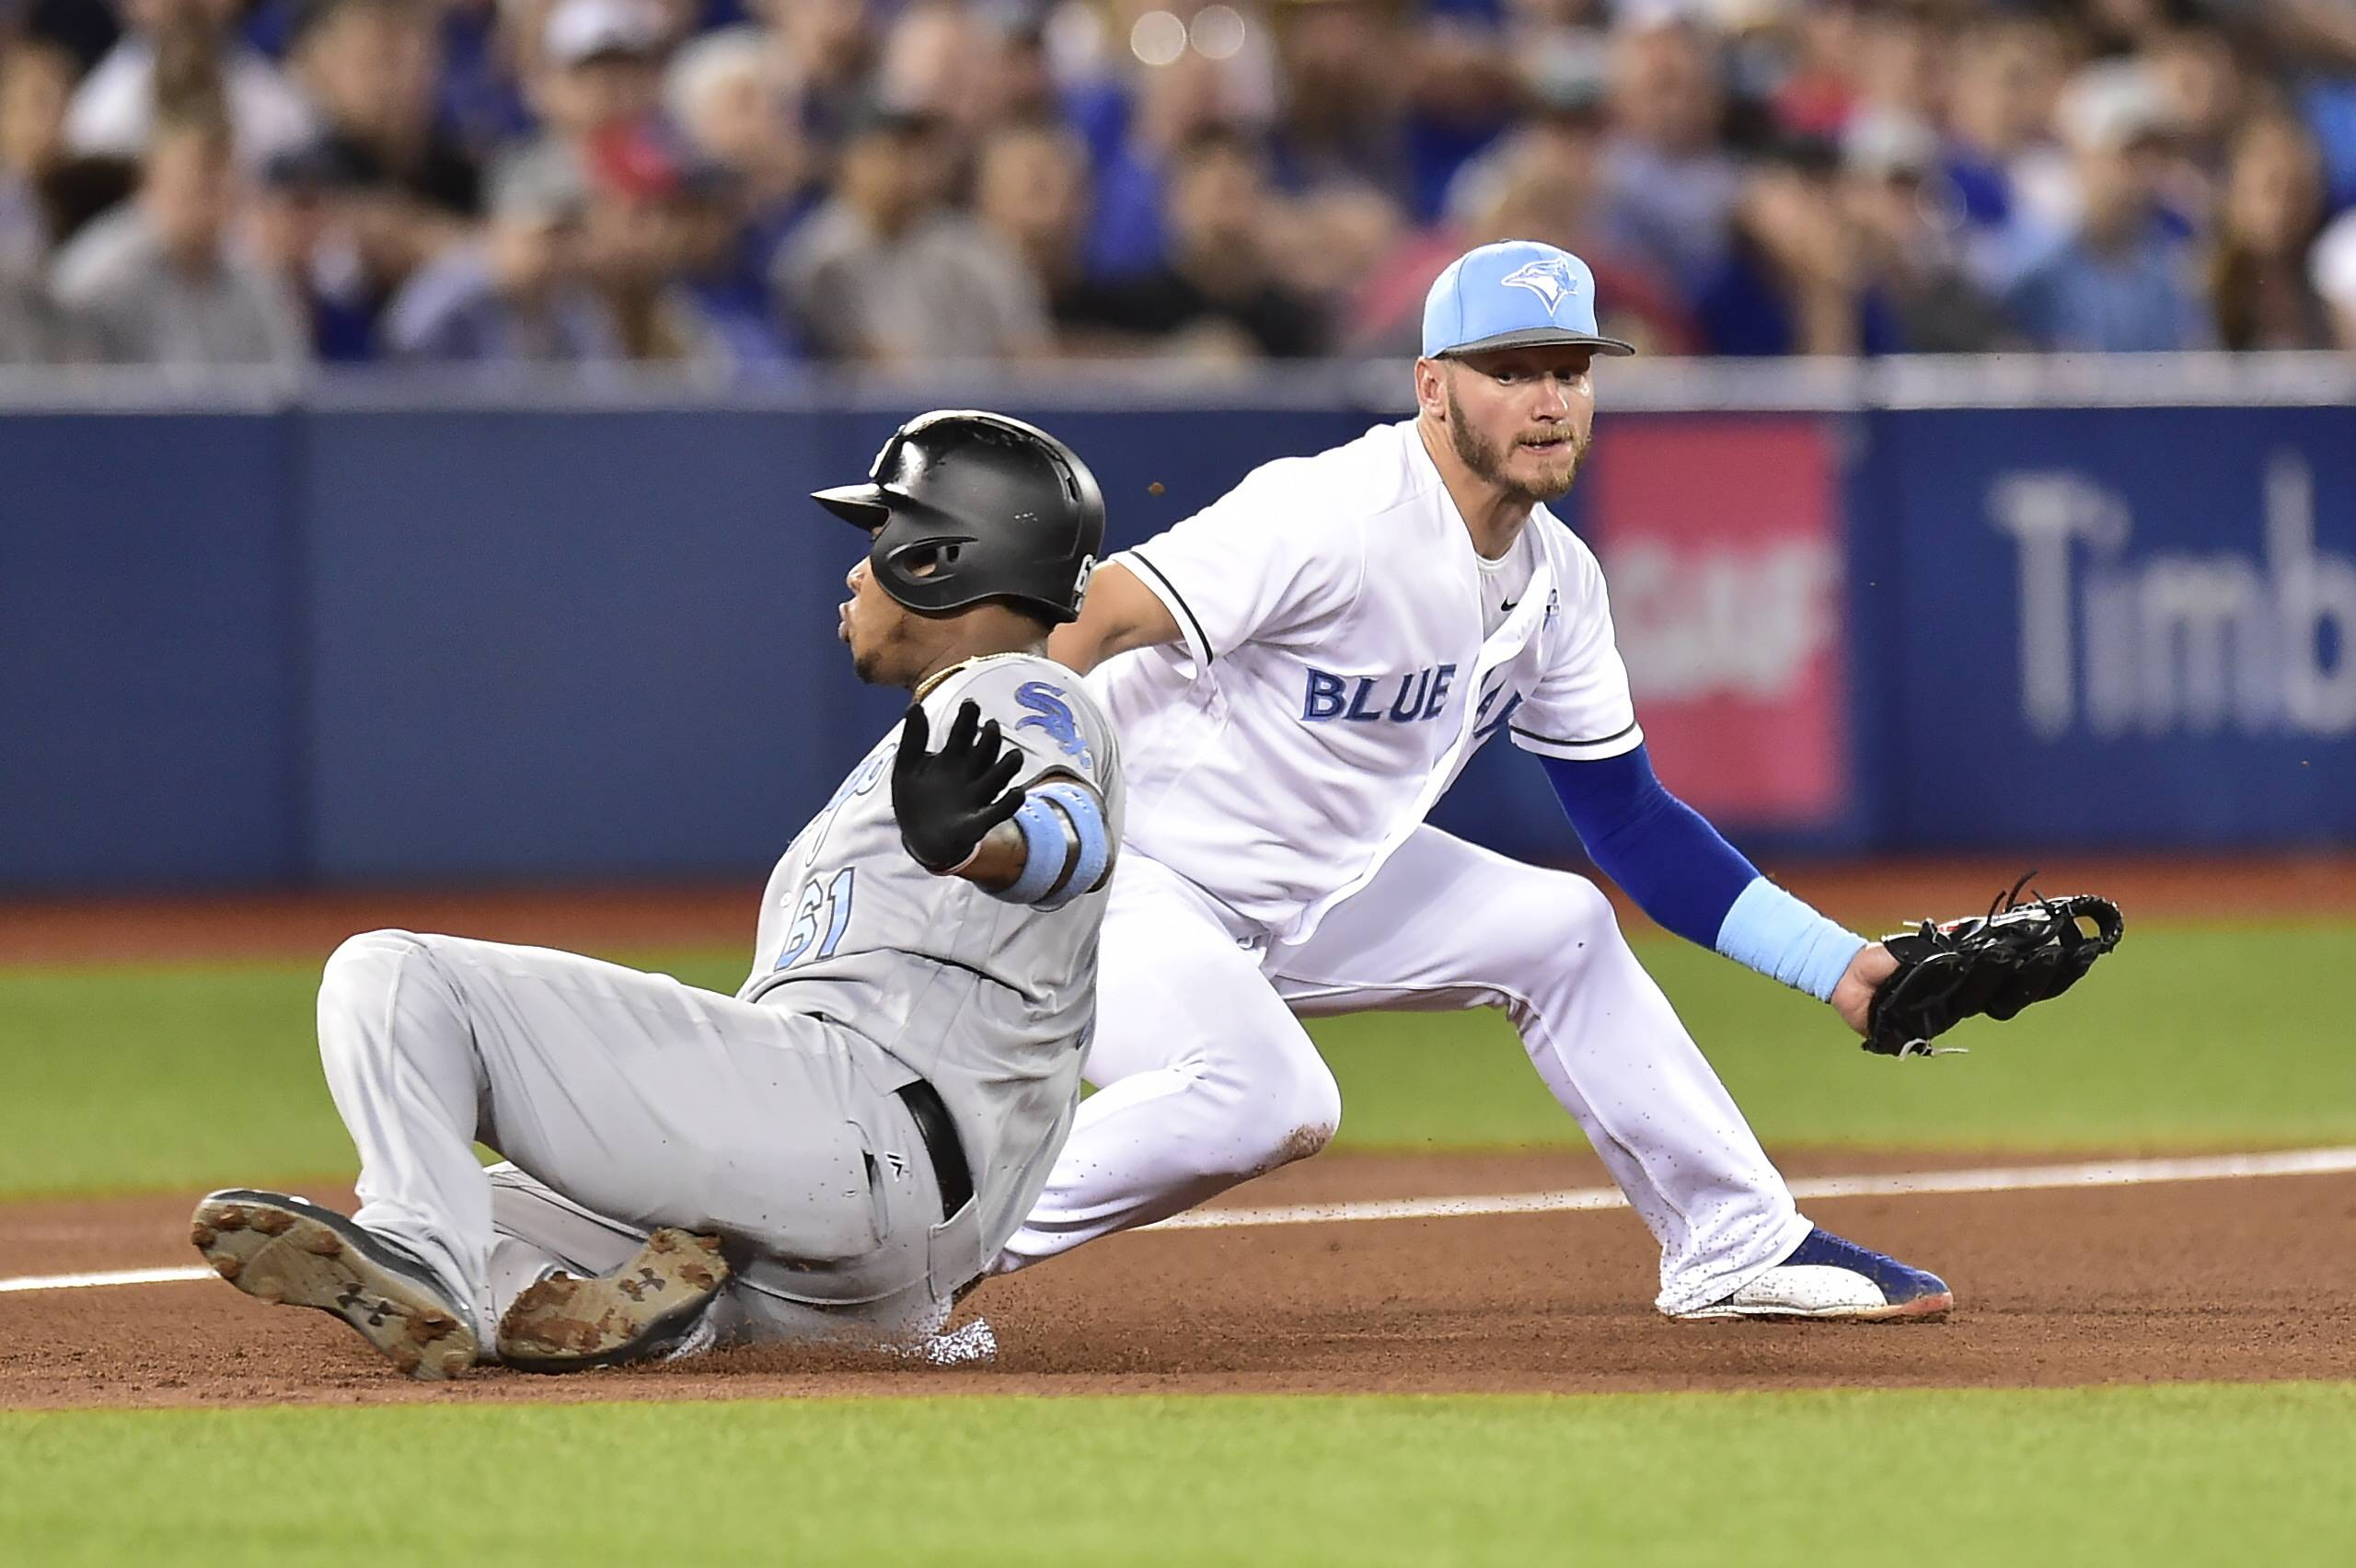 The White Sox's Willy Garcia slides safely into third base ahead of the tag by Toronto Blue Jays third baseman Josh Donaldson (20) during fifth inning American League baseball action in Toronto, Sunday, June 18, 2017. Garcia was advancing on a single by Kevan Smith.